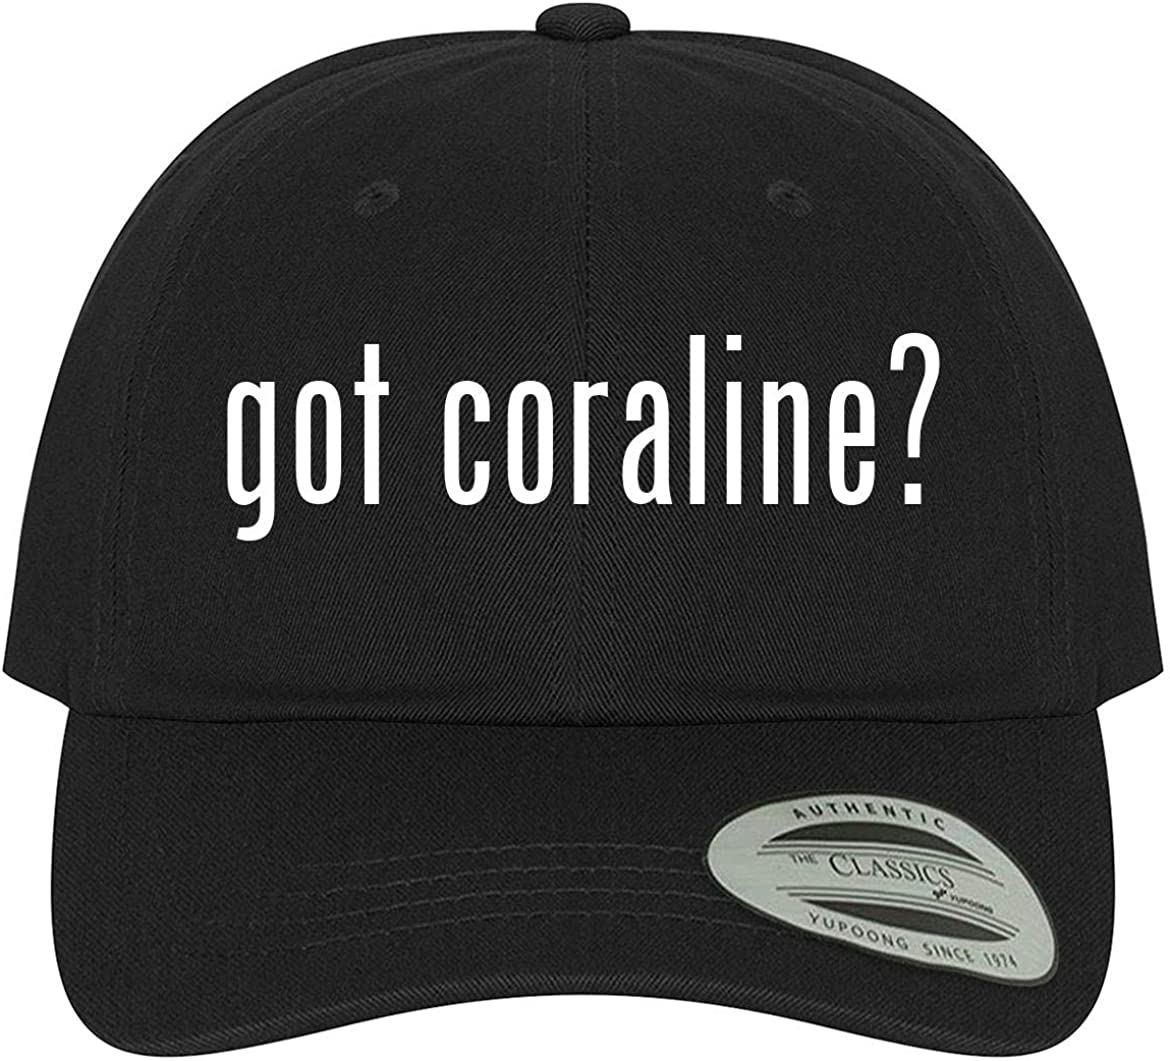 Amazon Com The Town Butler Got Coraline A Comfortable Adjustable Dad Baseball Hat Black One Size Clothing